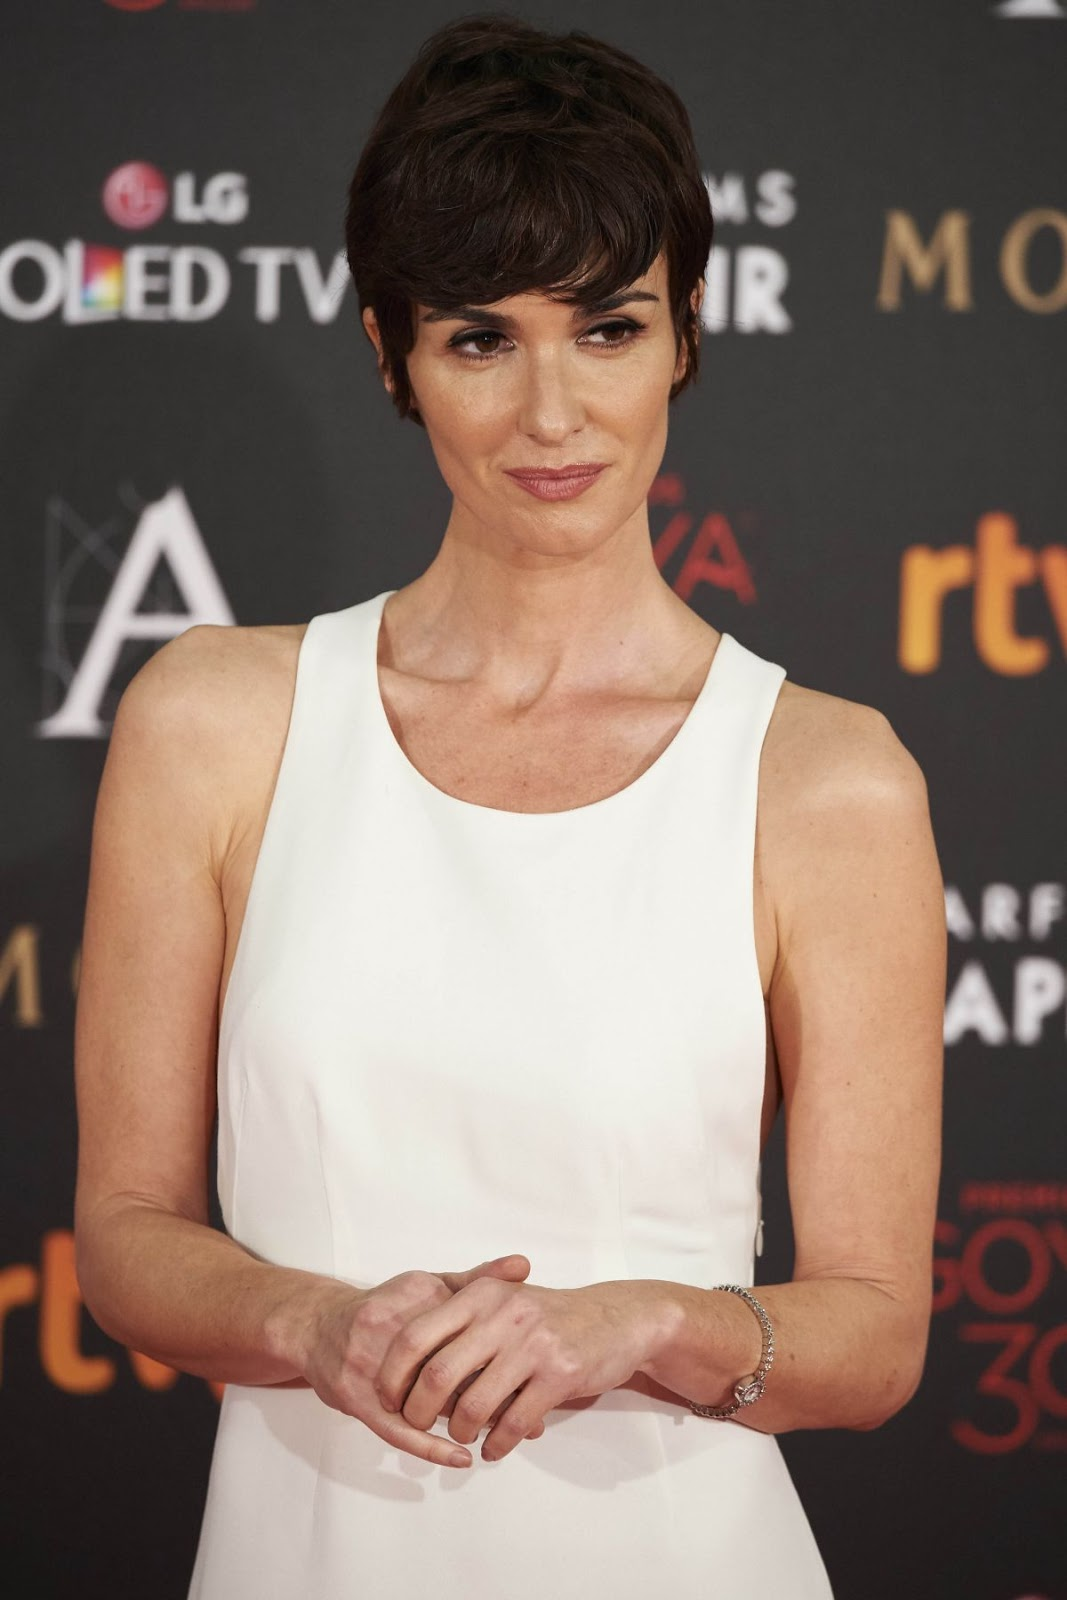 'All Roads Lead to Rome' actress Paz Vega at 30th Annual Goya Film Awards in Madrid